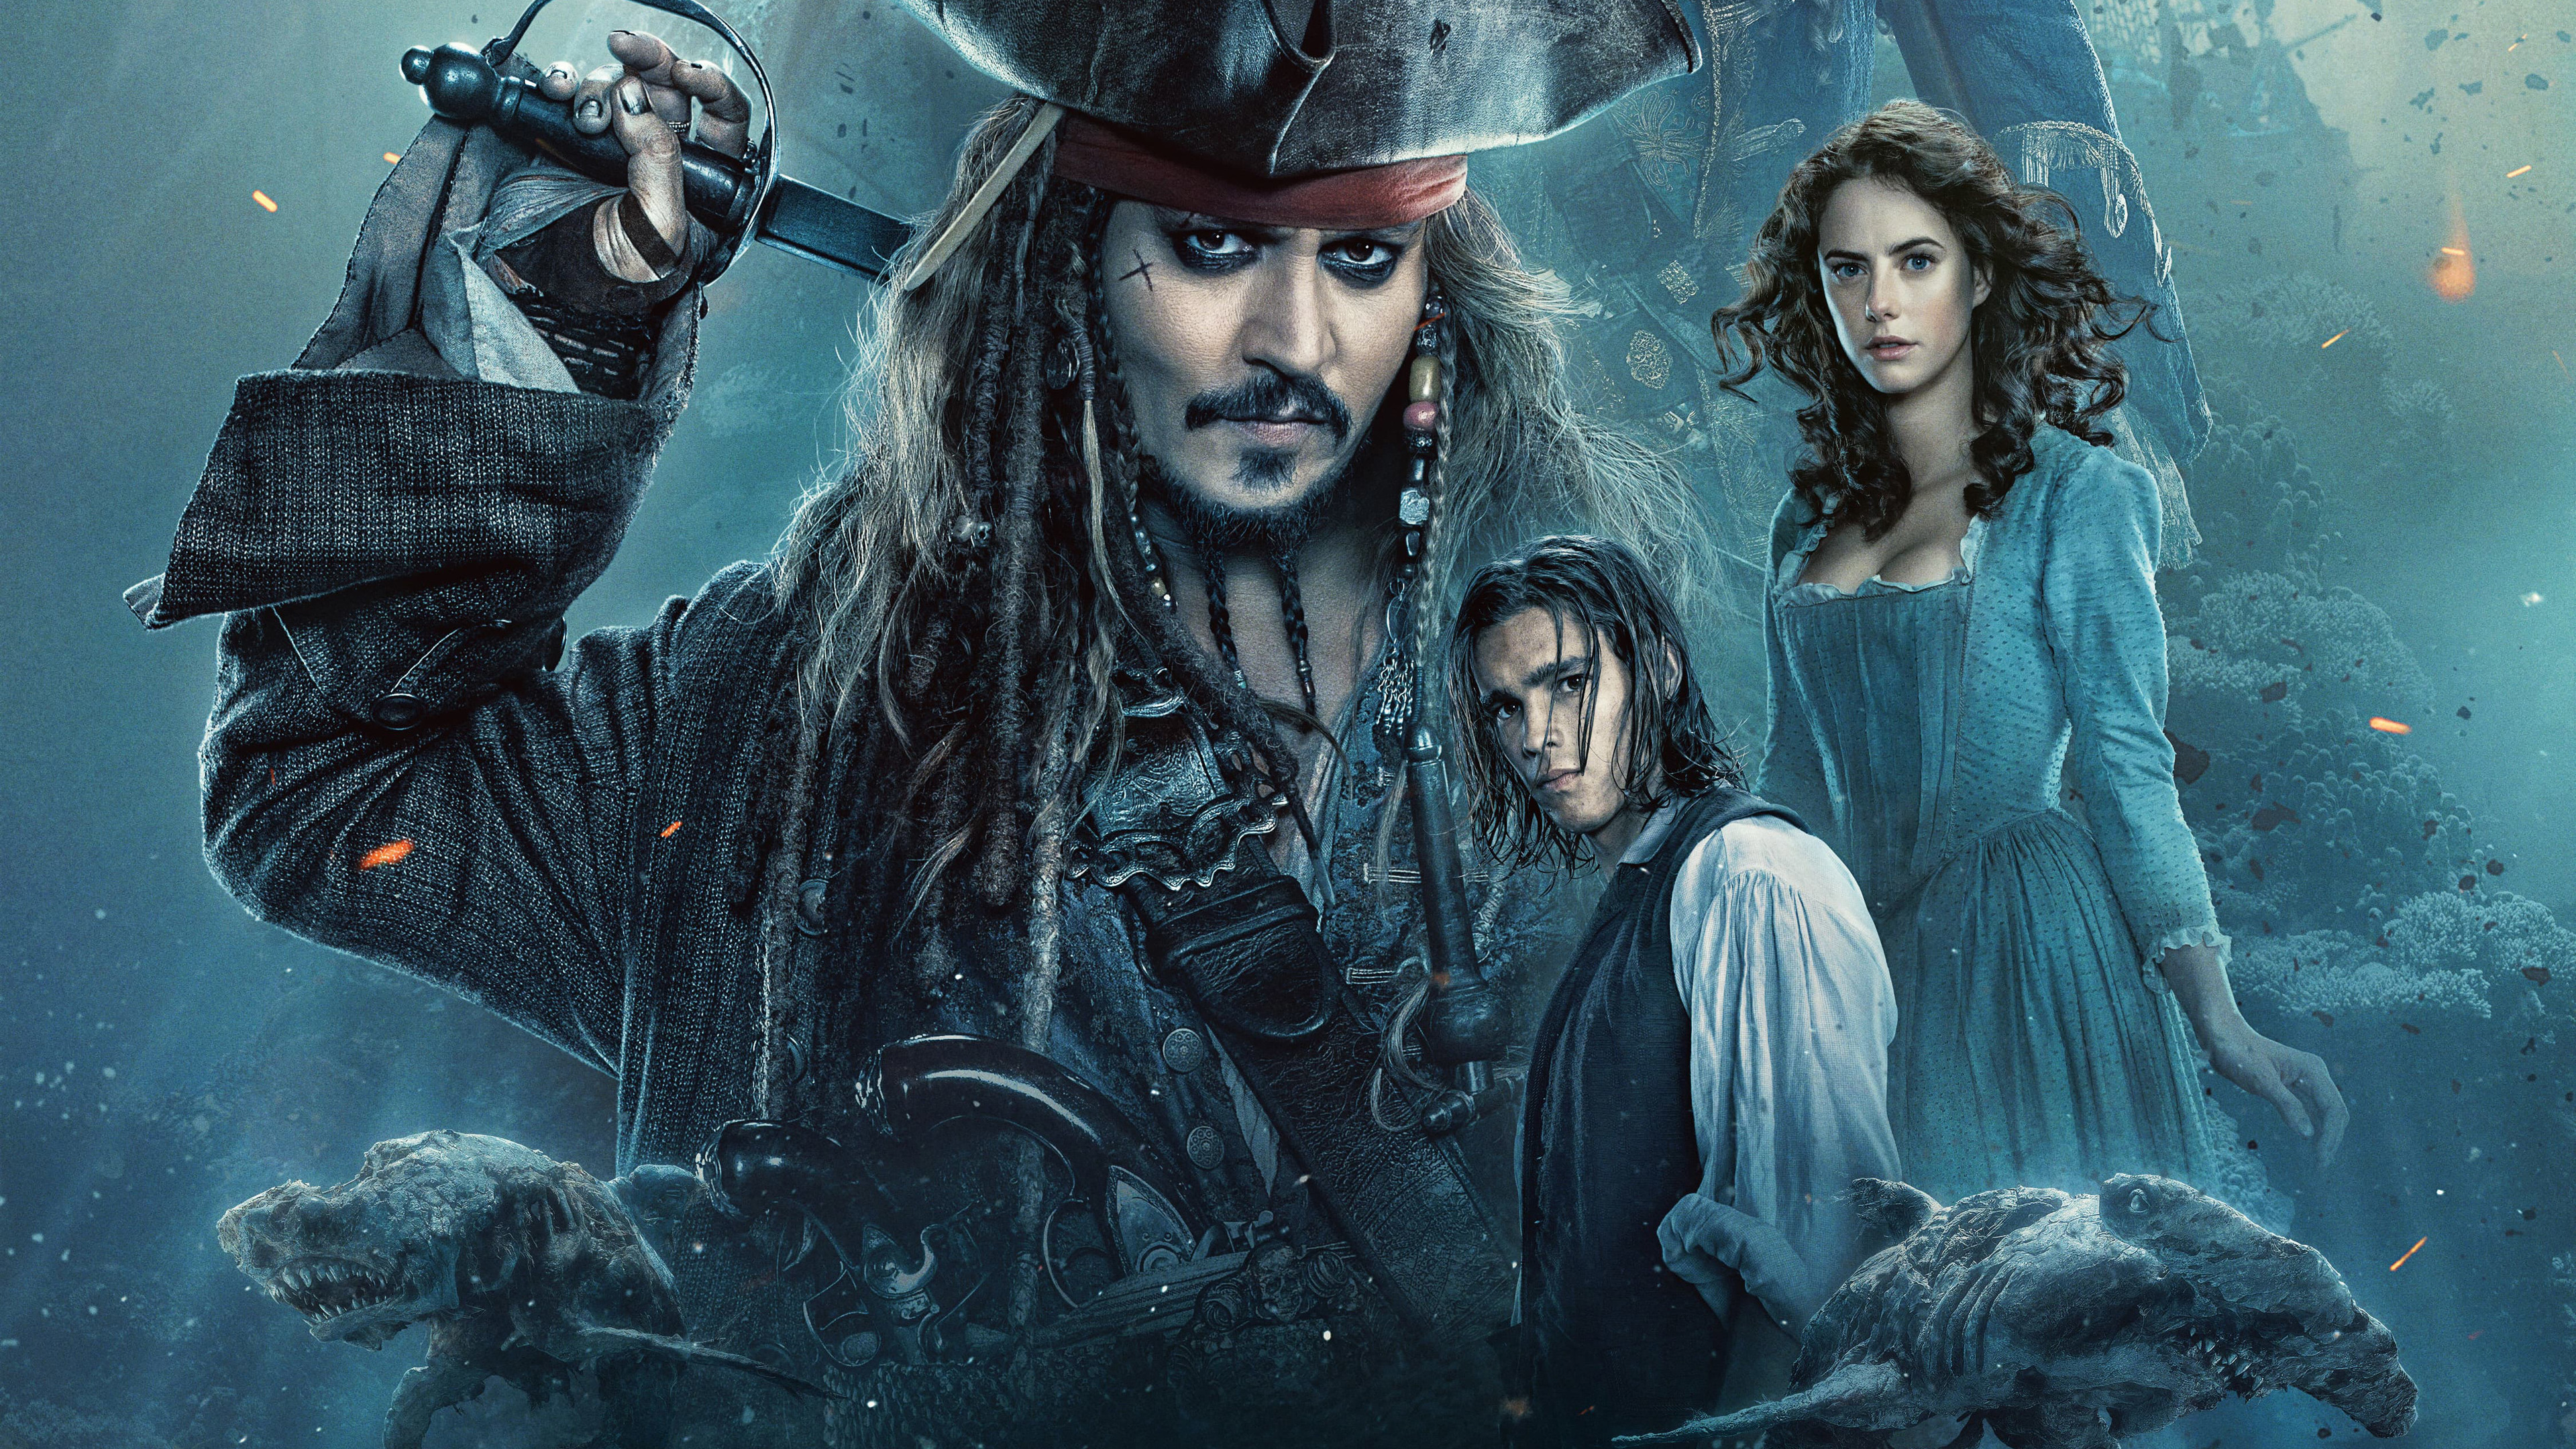 Wallpaper 4k 2017 Pirates Of The Caribbean Dead Men Tell No